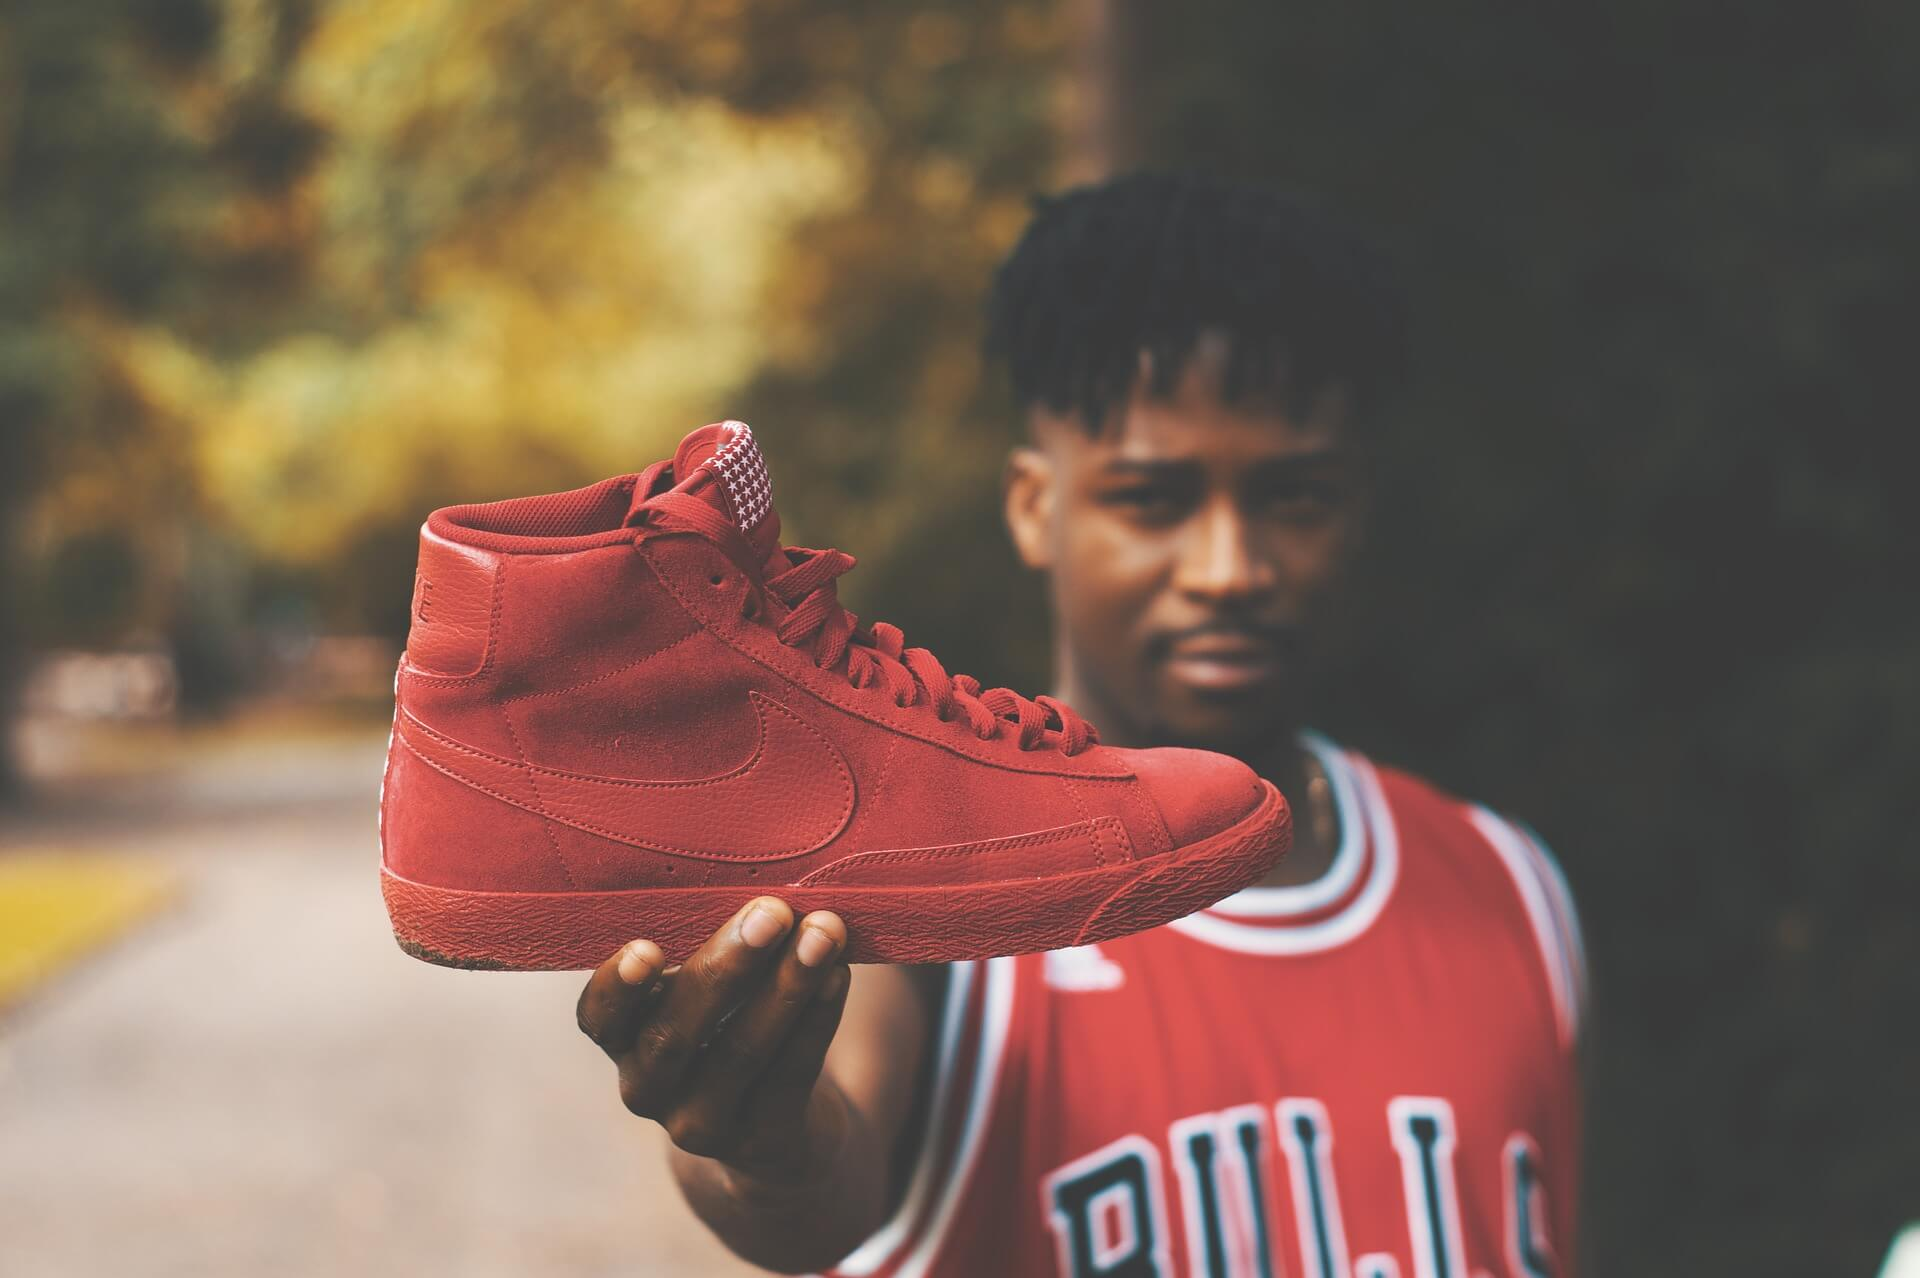 Man holding red sneaker